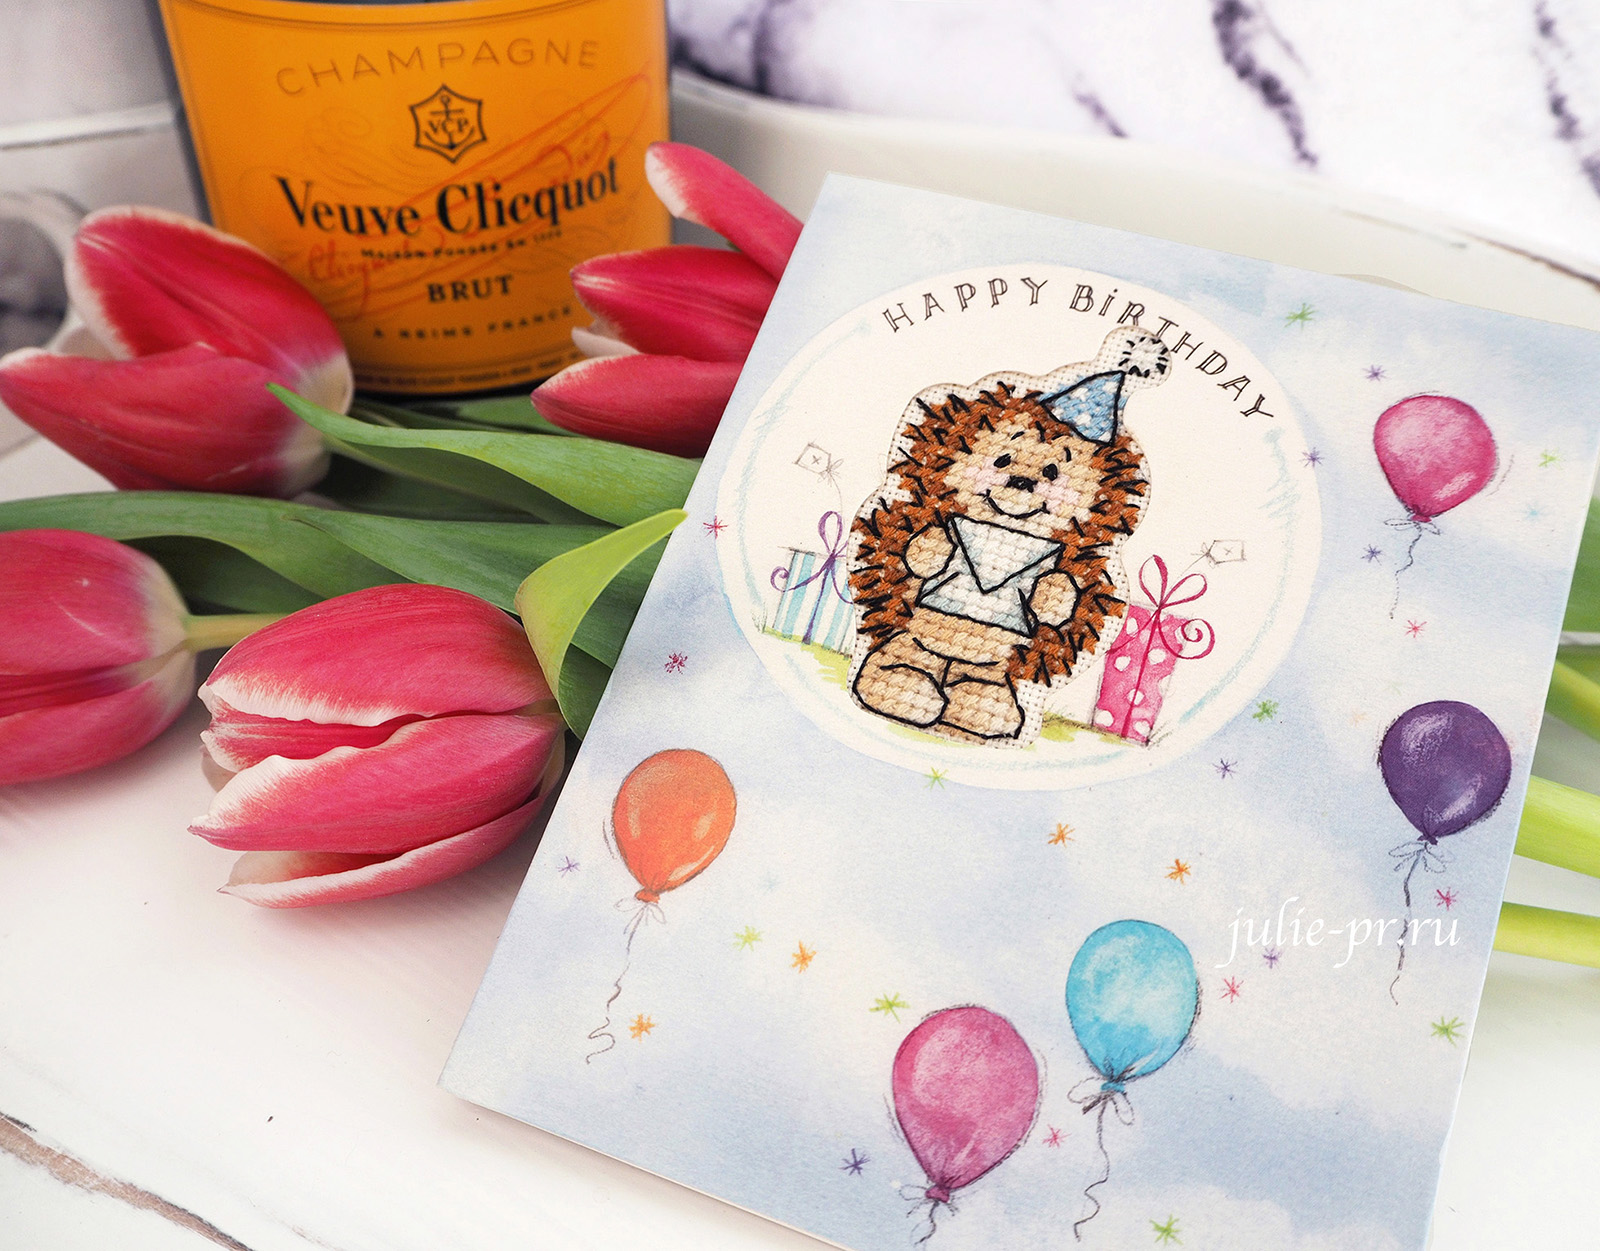 Открытка, вышивка крестом, Herbert Hedgehog birthday card от Jill Cooper, журнал The world of cross stitching (№258, сентябрь 2017)